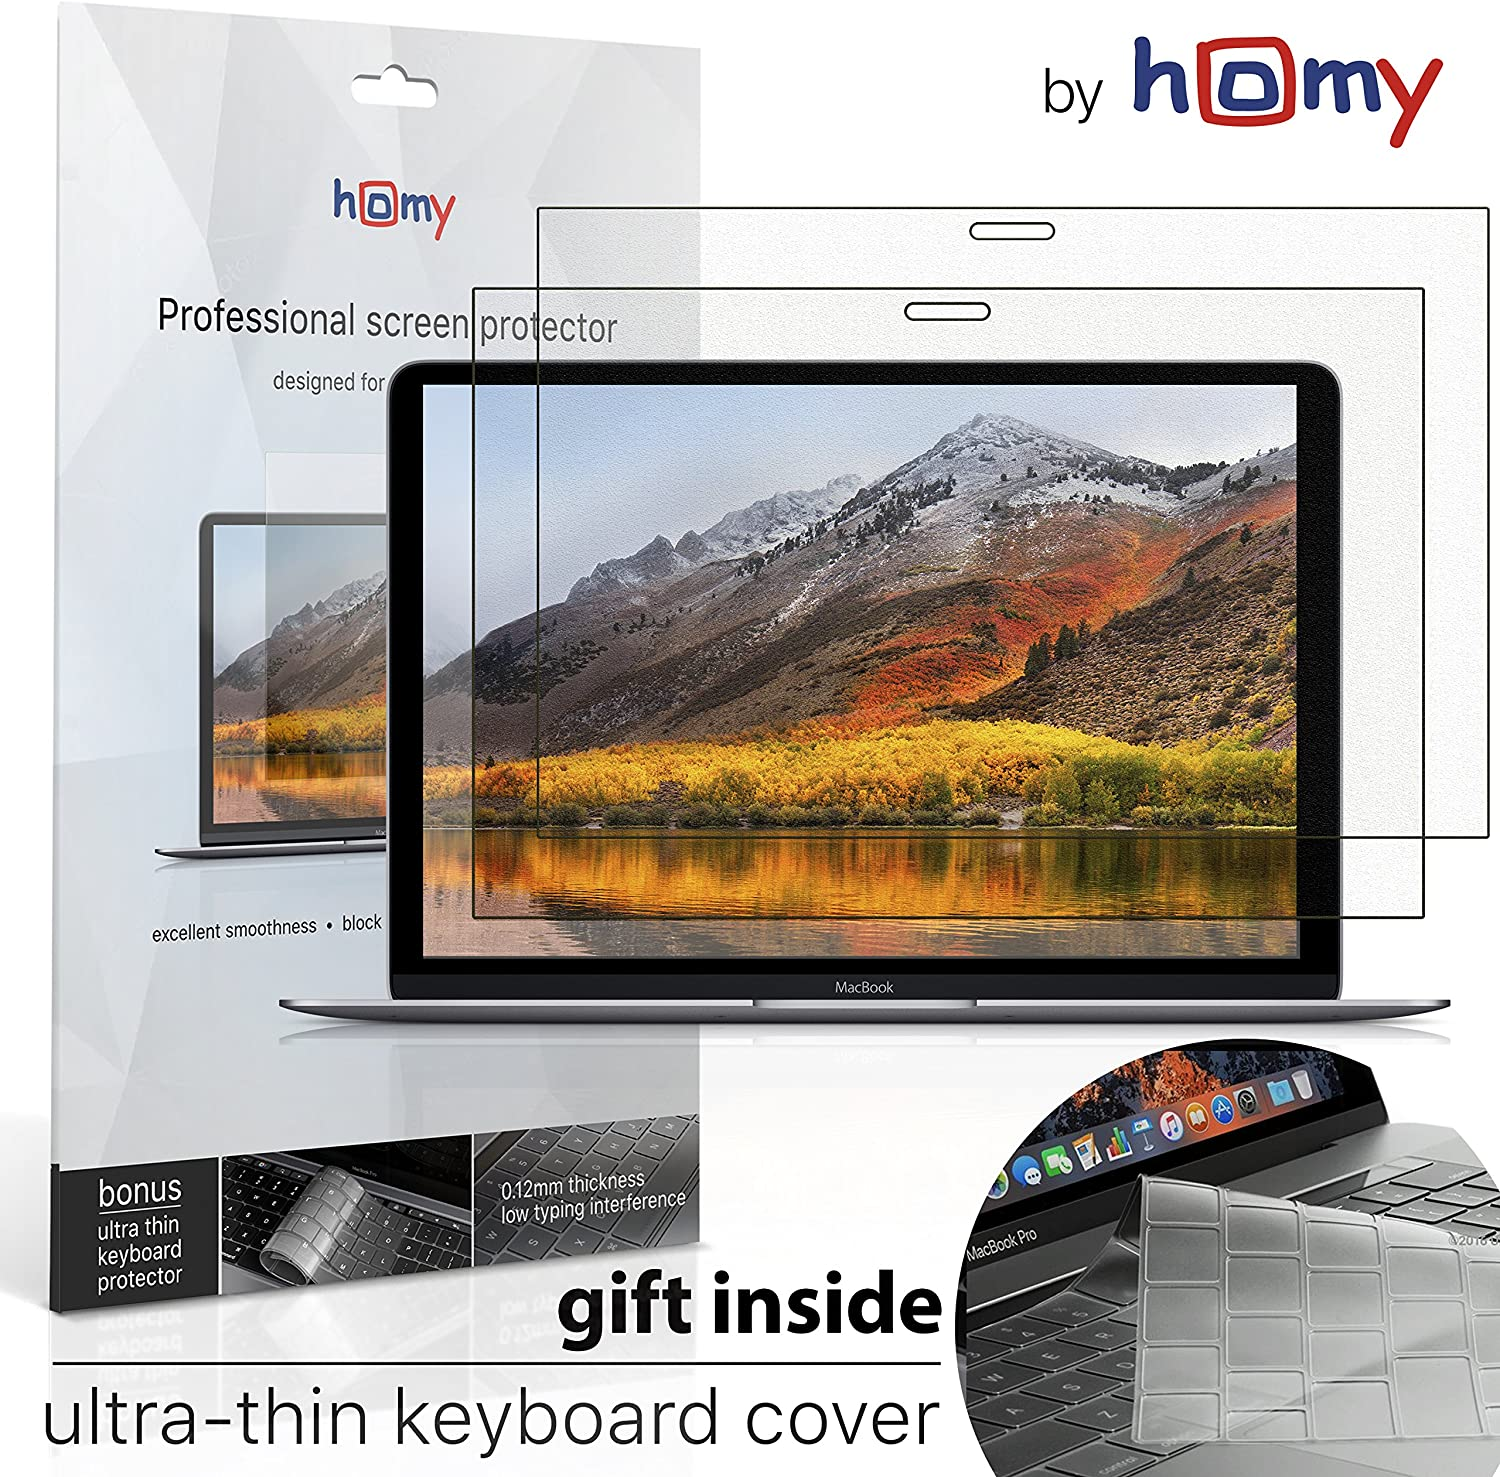 Homy Screen Protector Kit [2-Pack] for MacBook Pro 15 inch Touch Bar 2016-2020: 1x Matte, 1x Glare. Gift: Ultra-Thin TPU Keyboard Cover (like skin). Premium Apple Laptop Kit 15inch Model A1707, A1990.